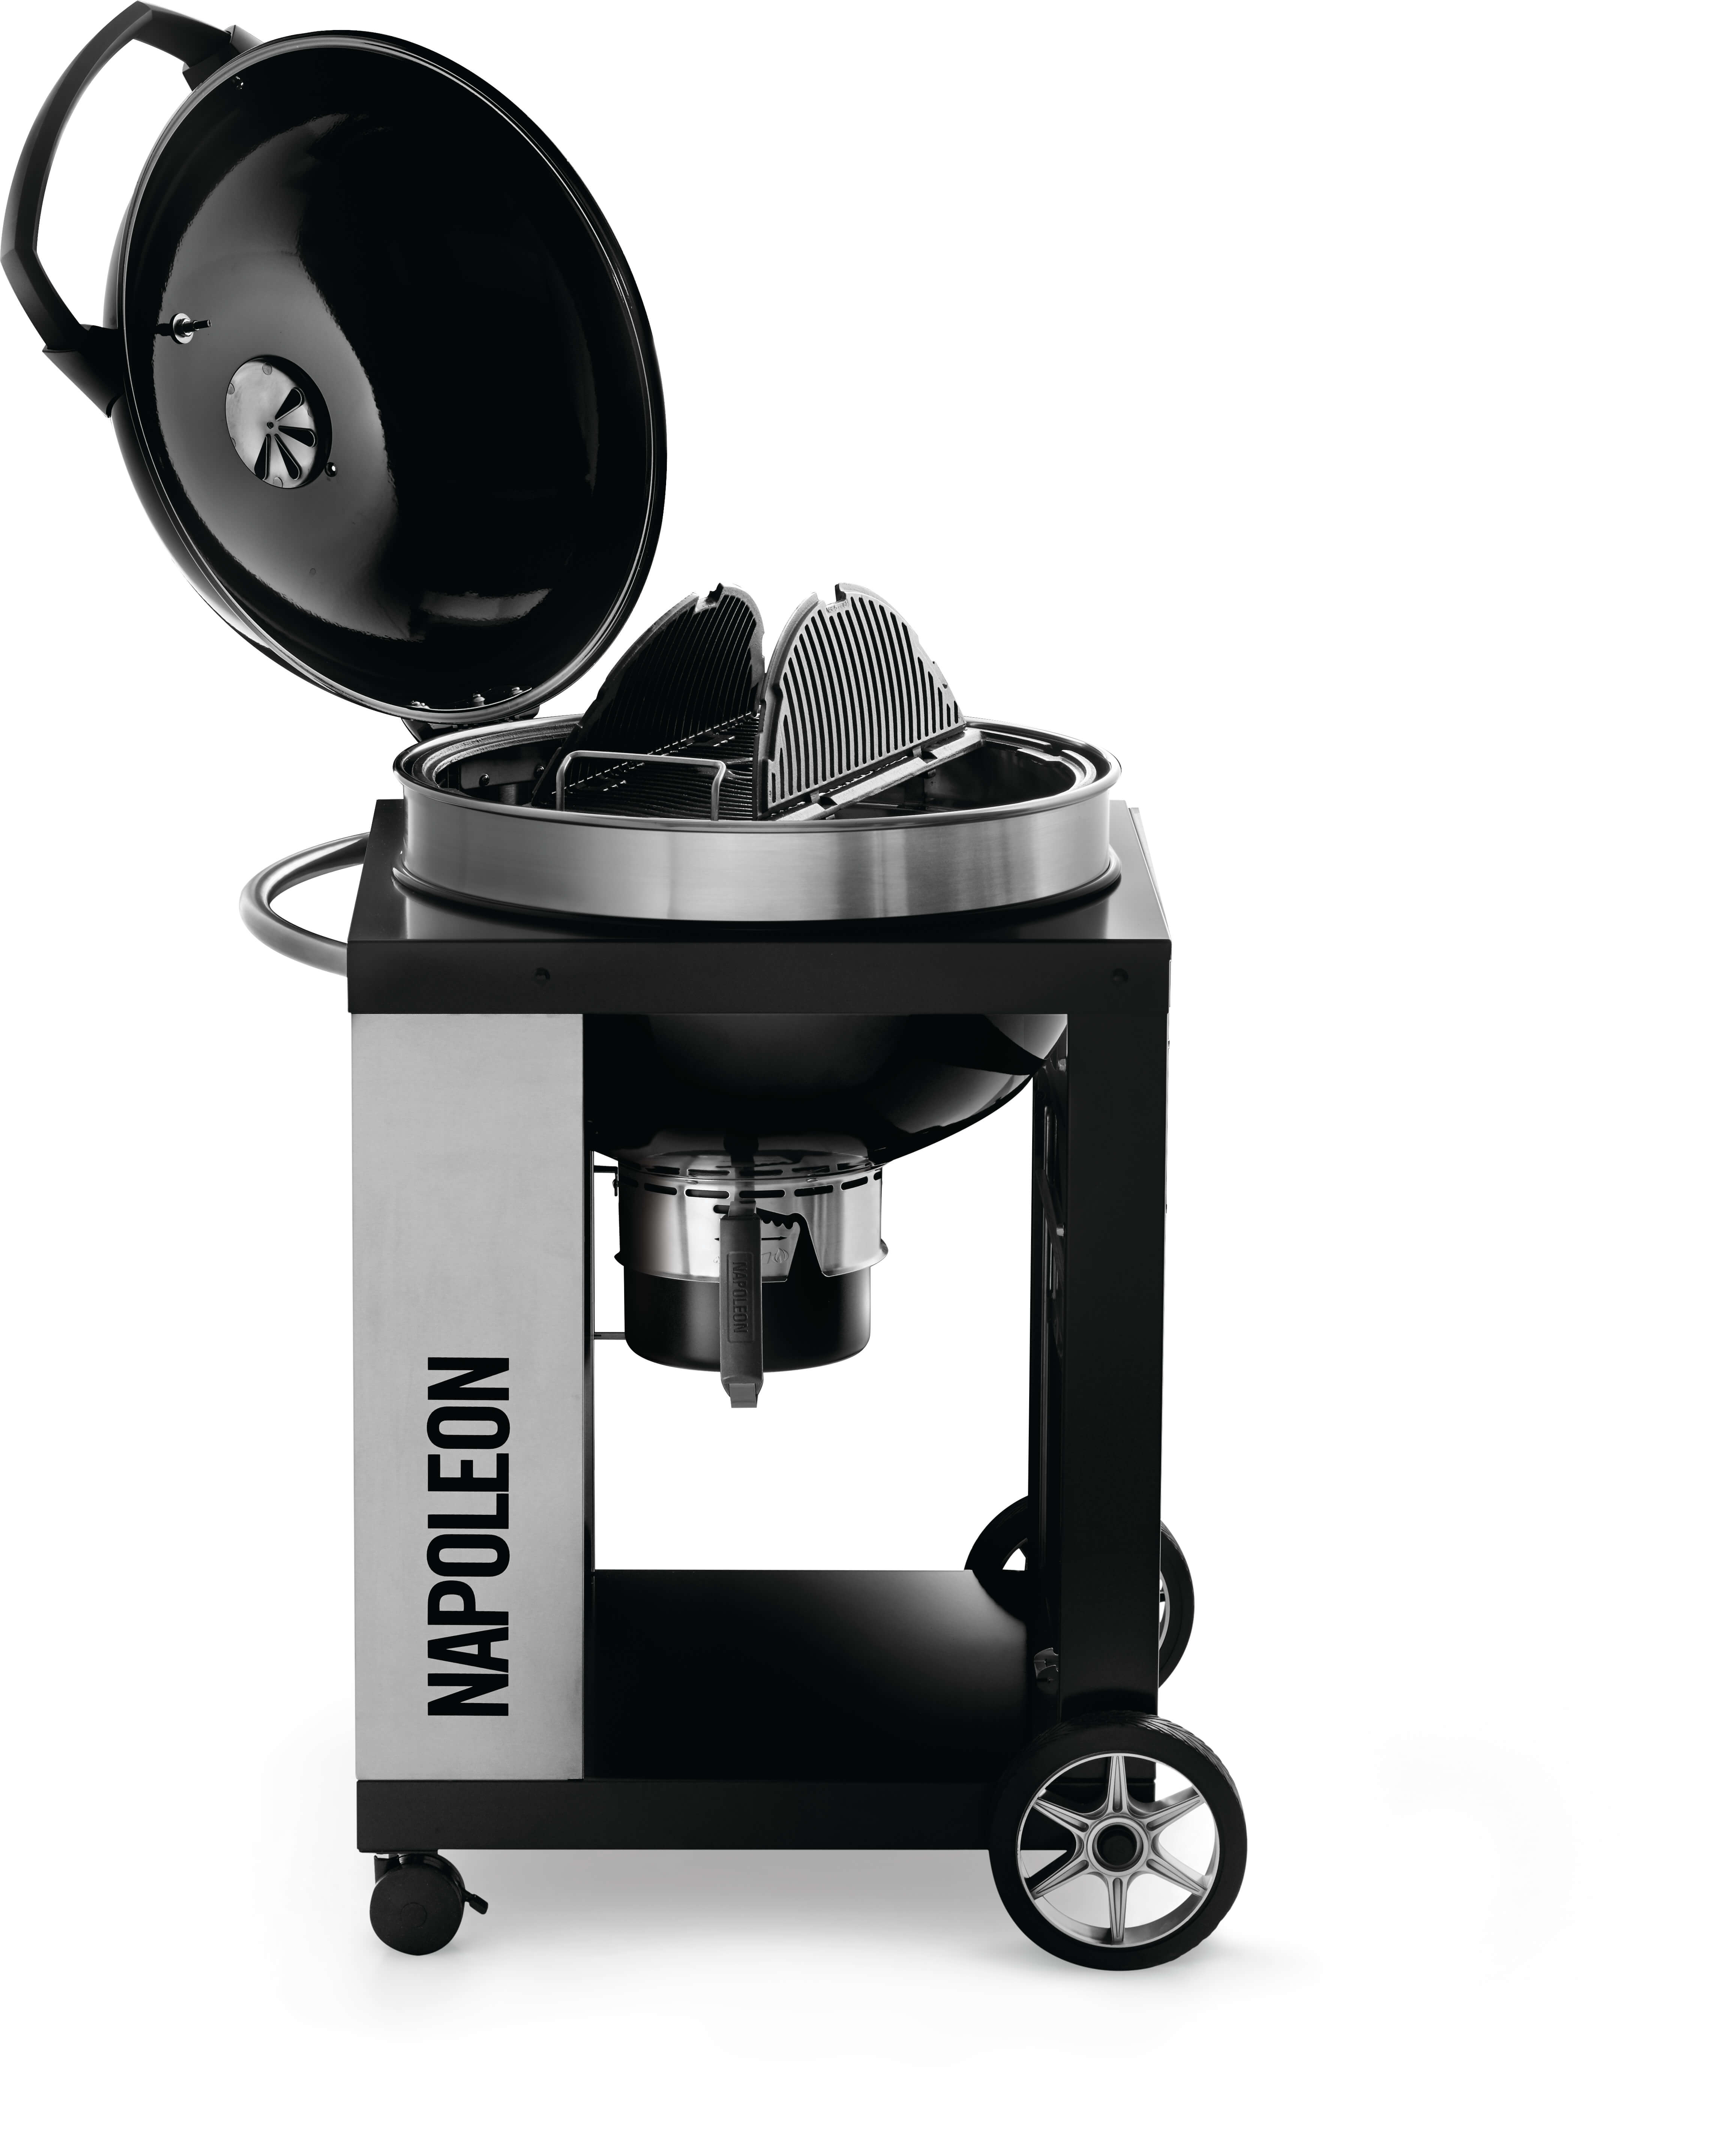 PRO CART Charcoal Kettle Grill, Black